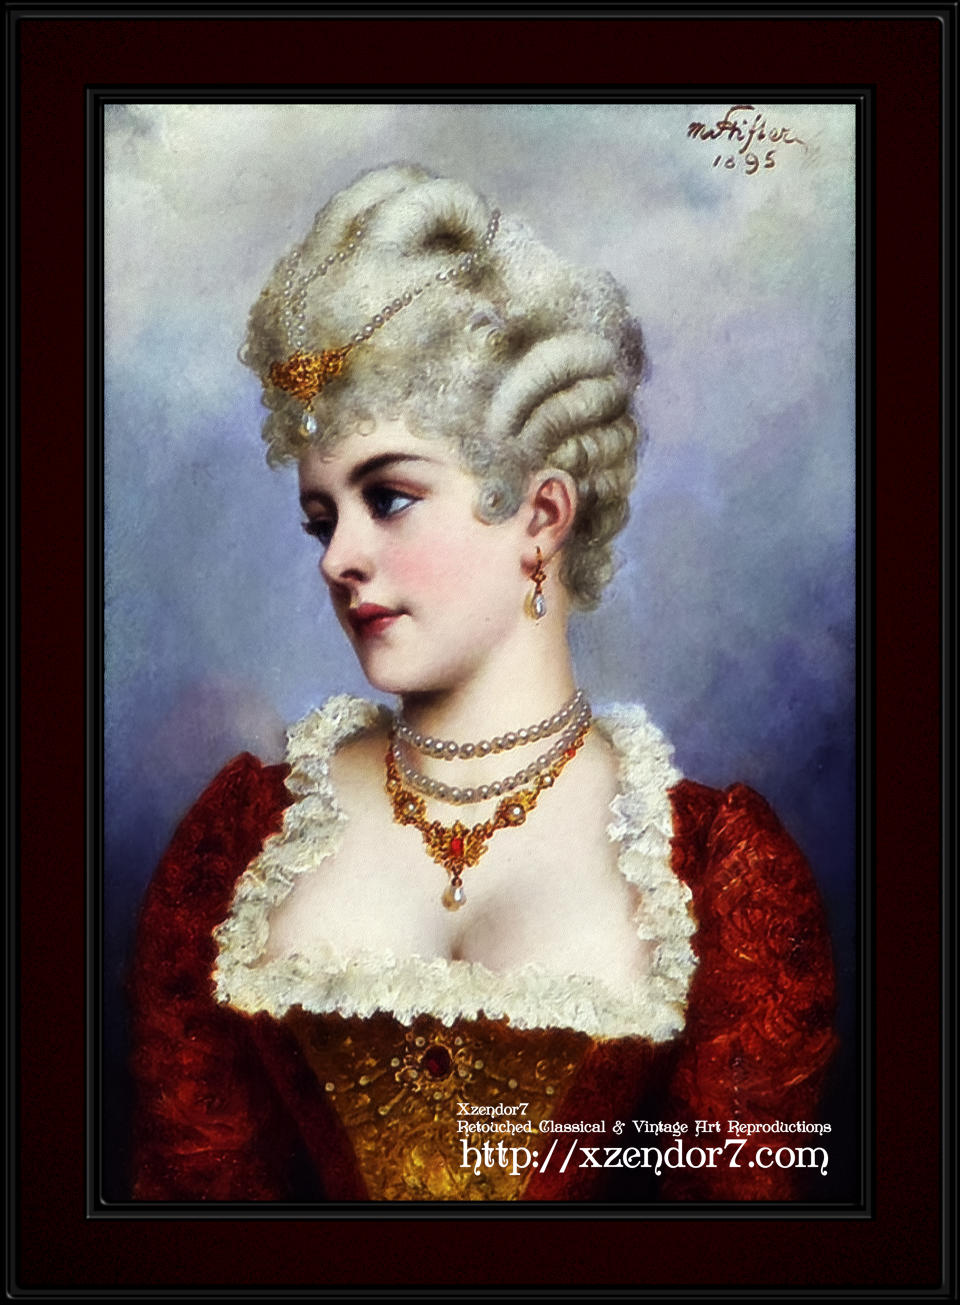 Portrait Of A Young Beauty by Moritz Stifter